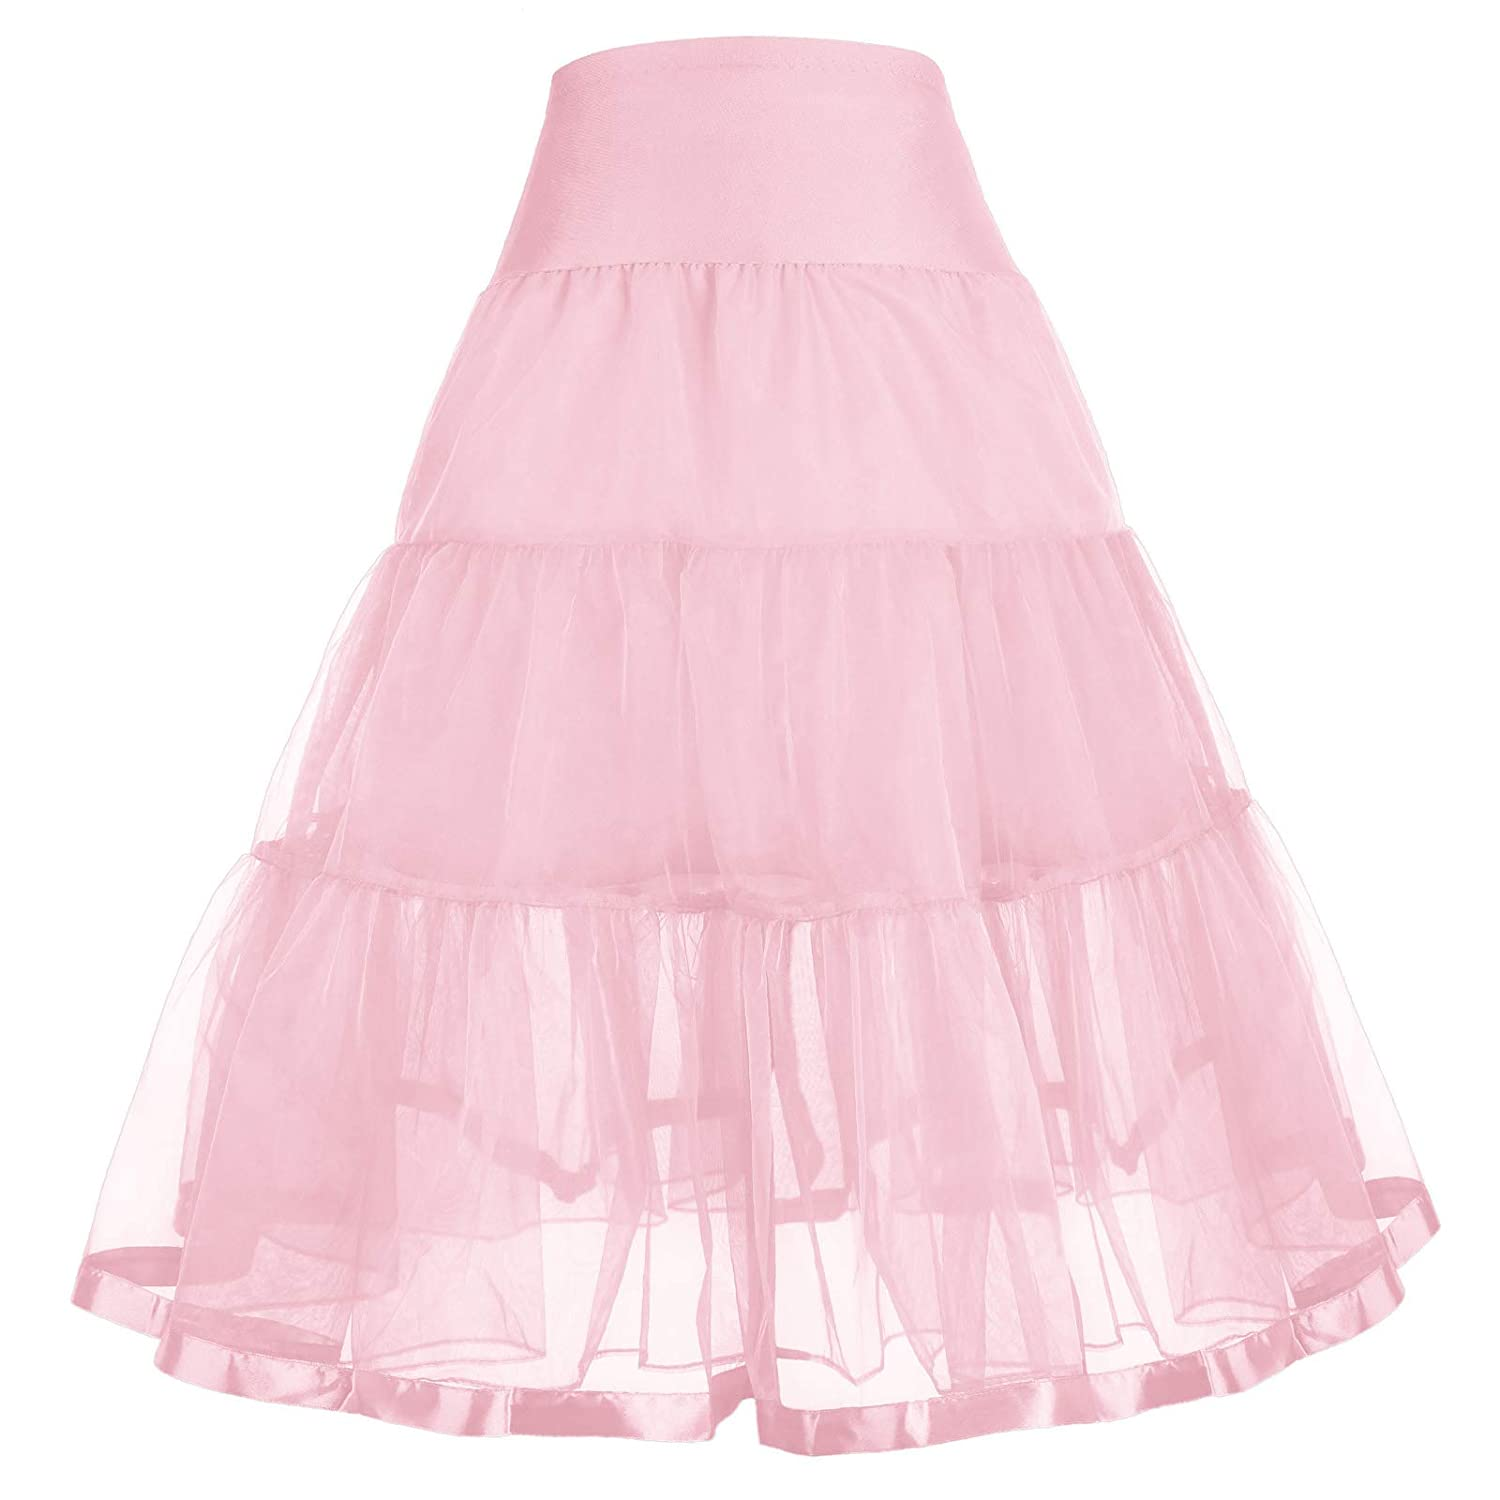 GRACE KARIN Little Girl Voile Crinoline Tutu Petticoats(Long/Short)